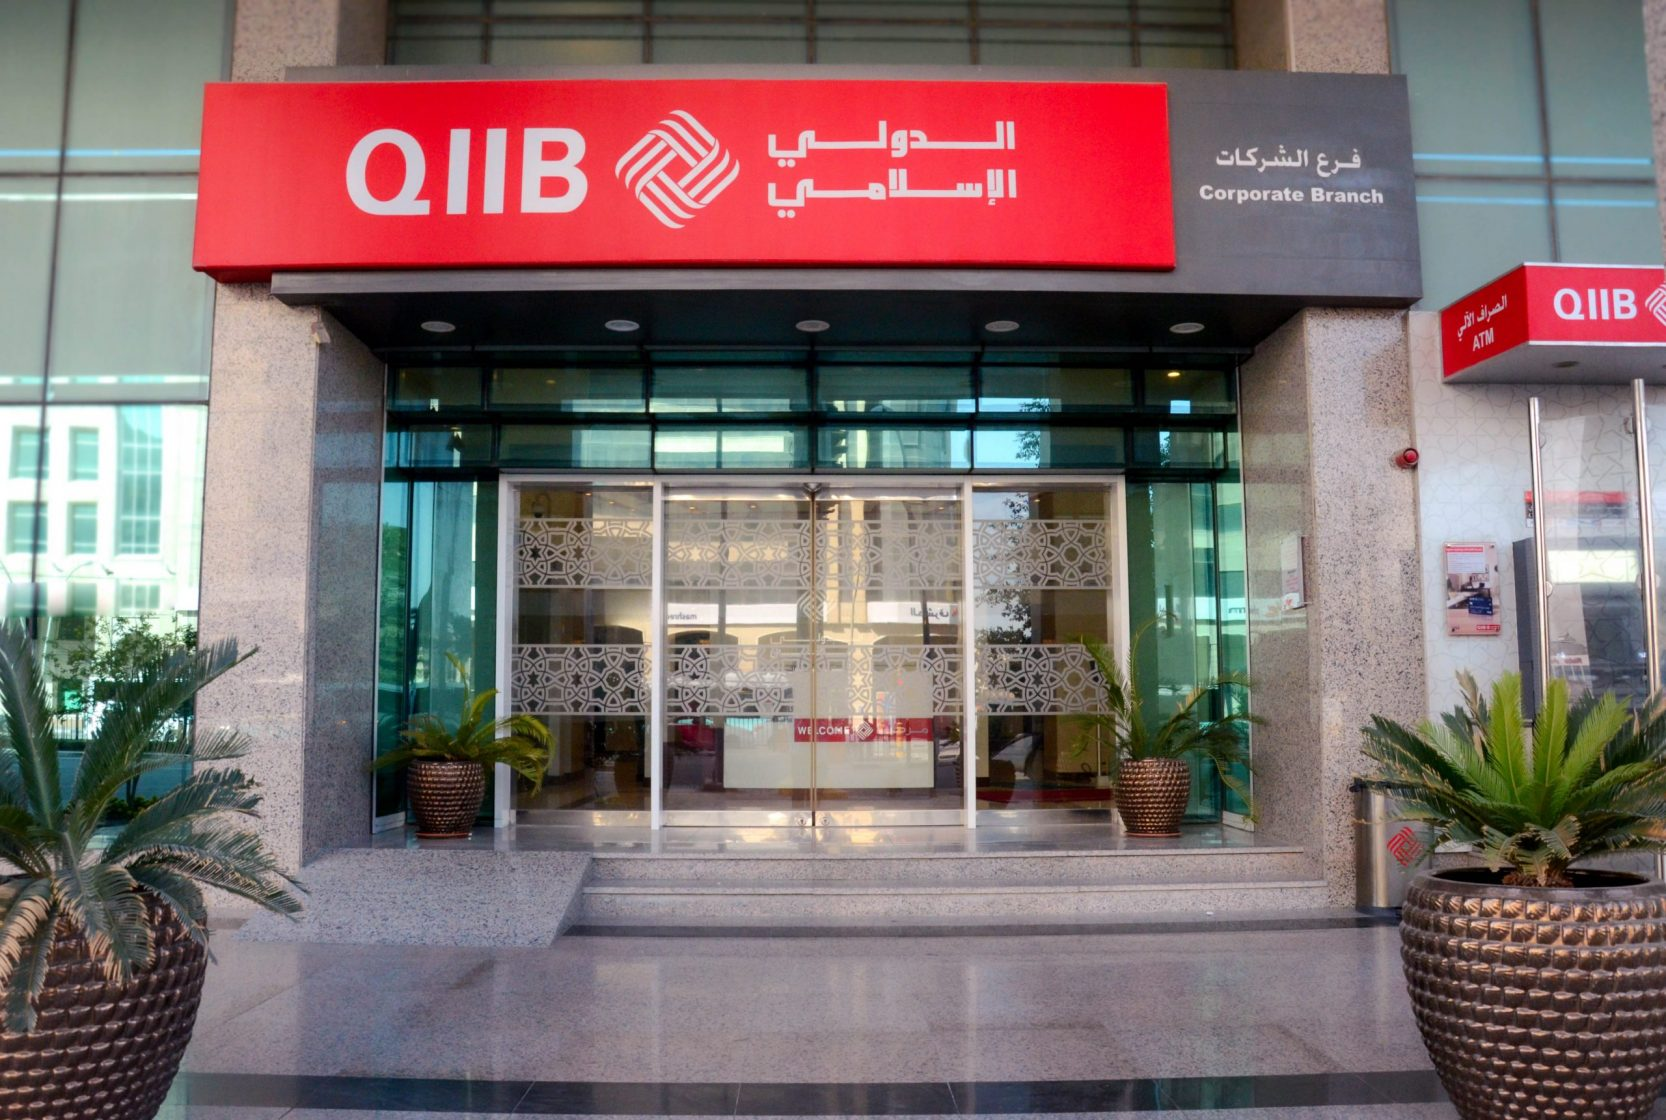 QIIB launches an offer in cooperation with Qatar Airways